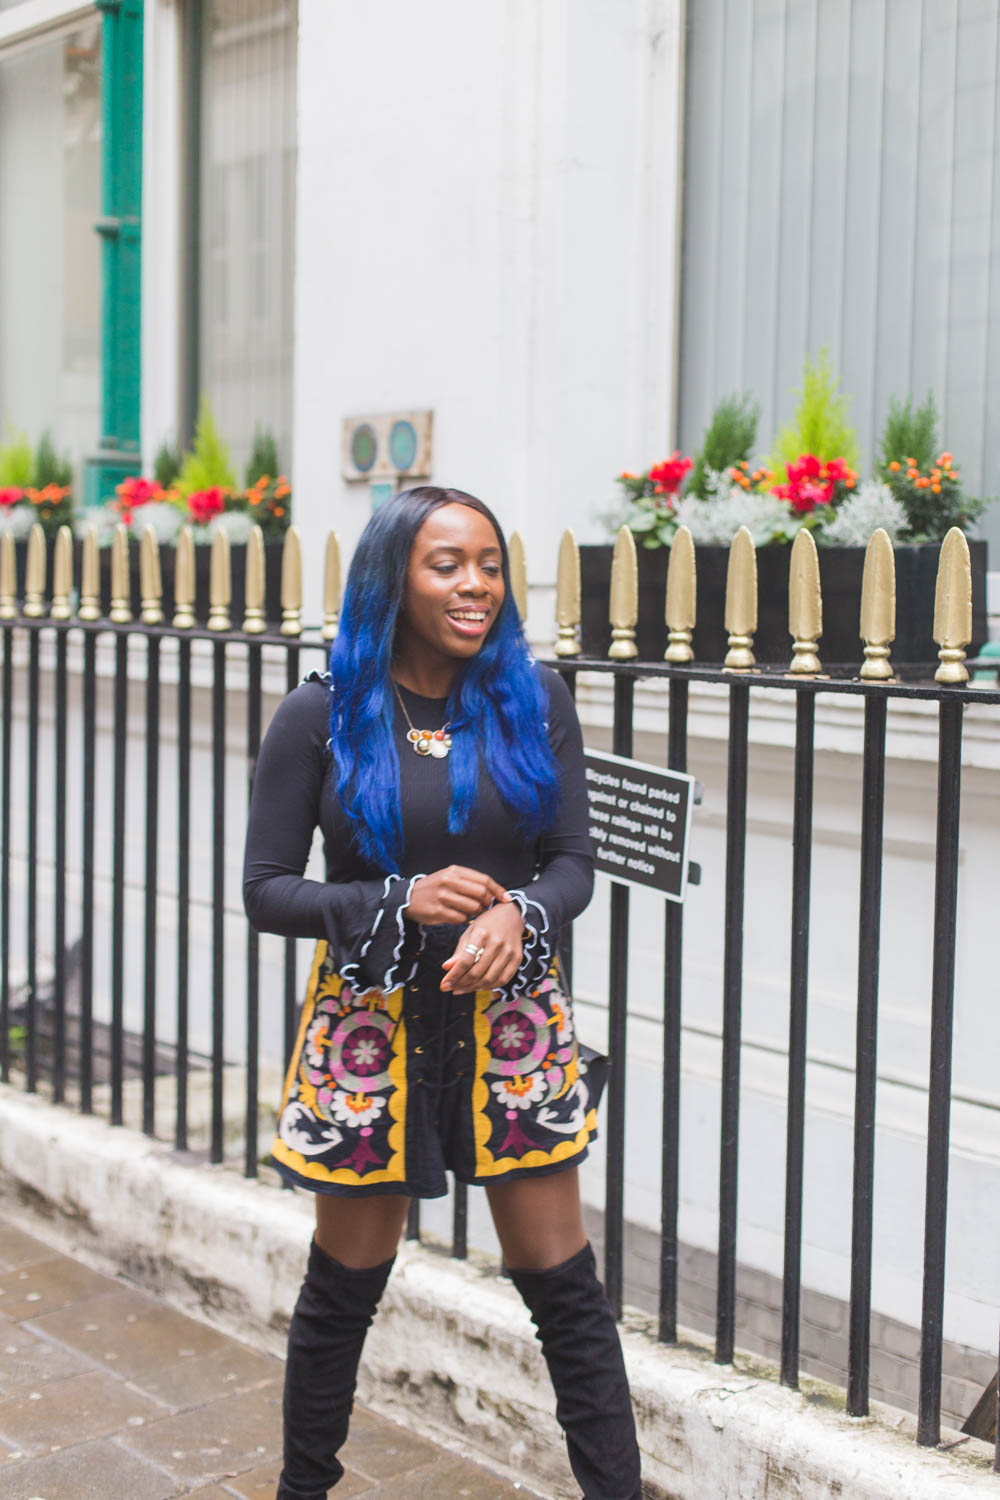 Mango top & ASOS embroidered skirt - How does one dress for a British Autumn? With vivid florals, quirky knits and lots of denim of course! I'm sharing my strategy for transitional outfits.